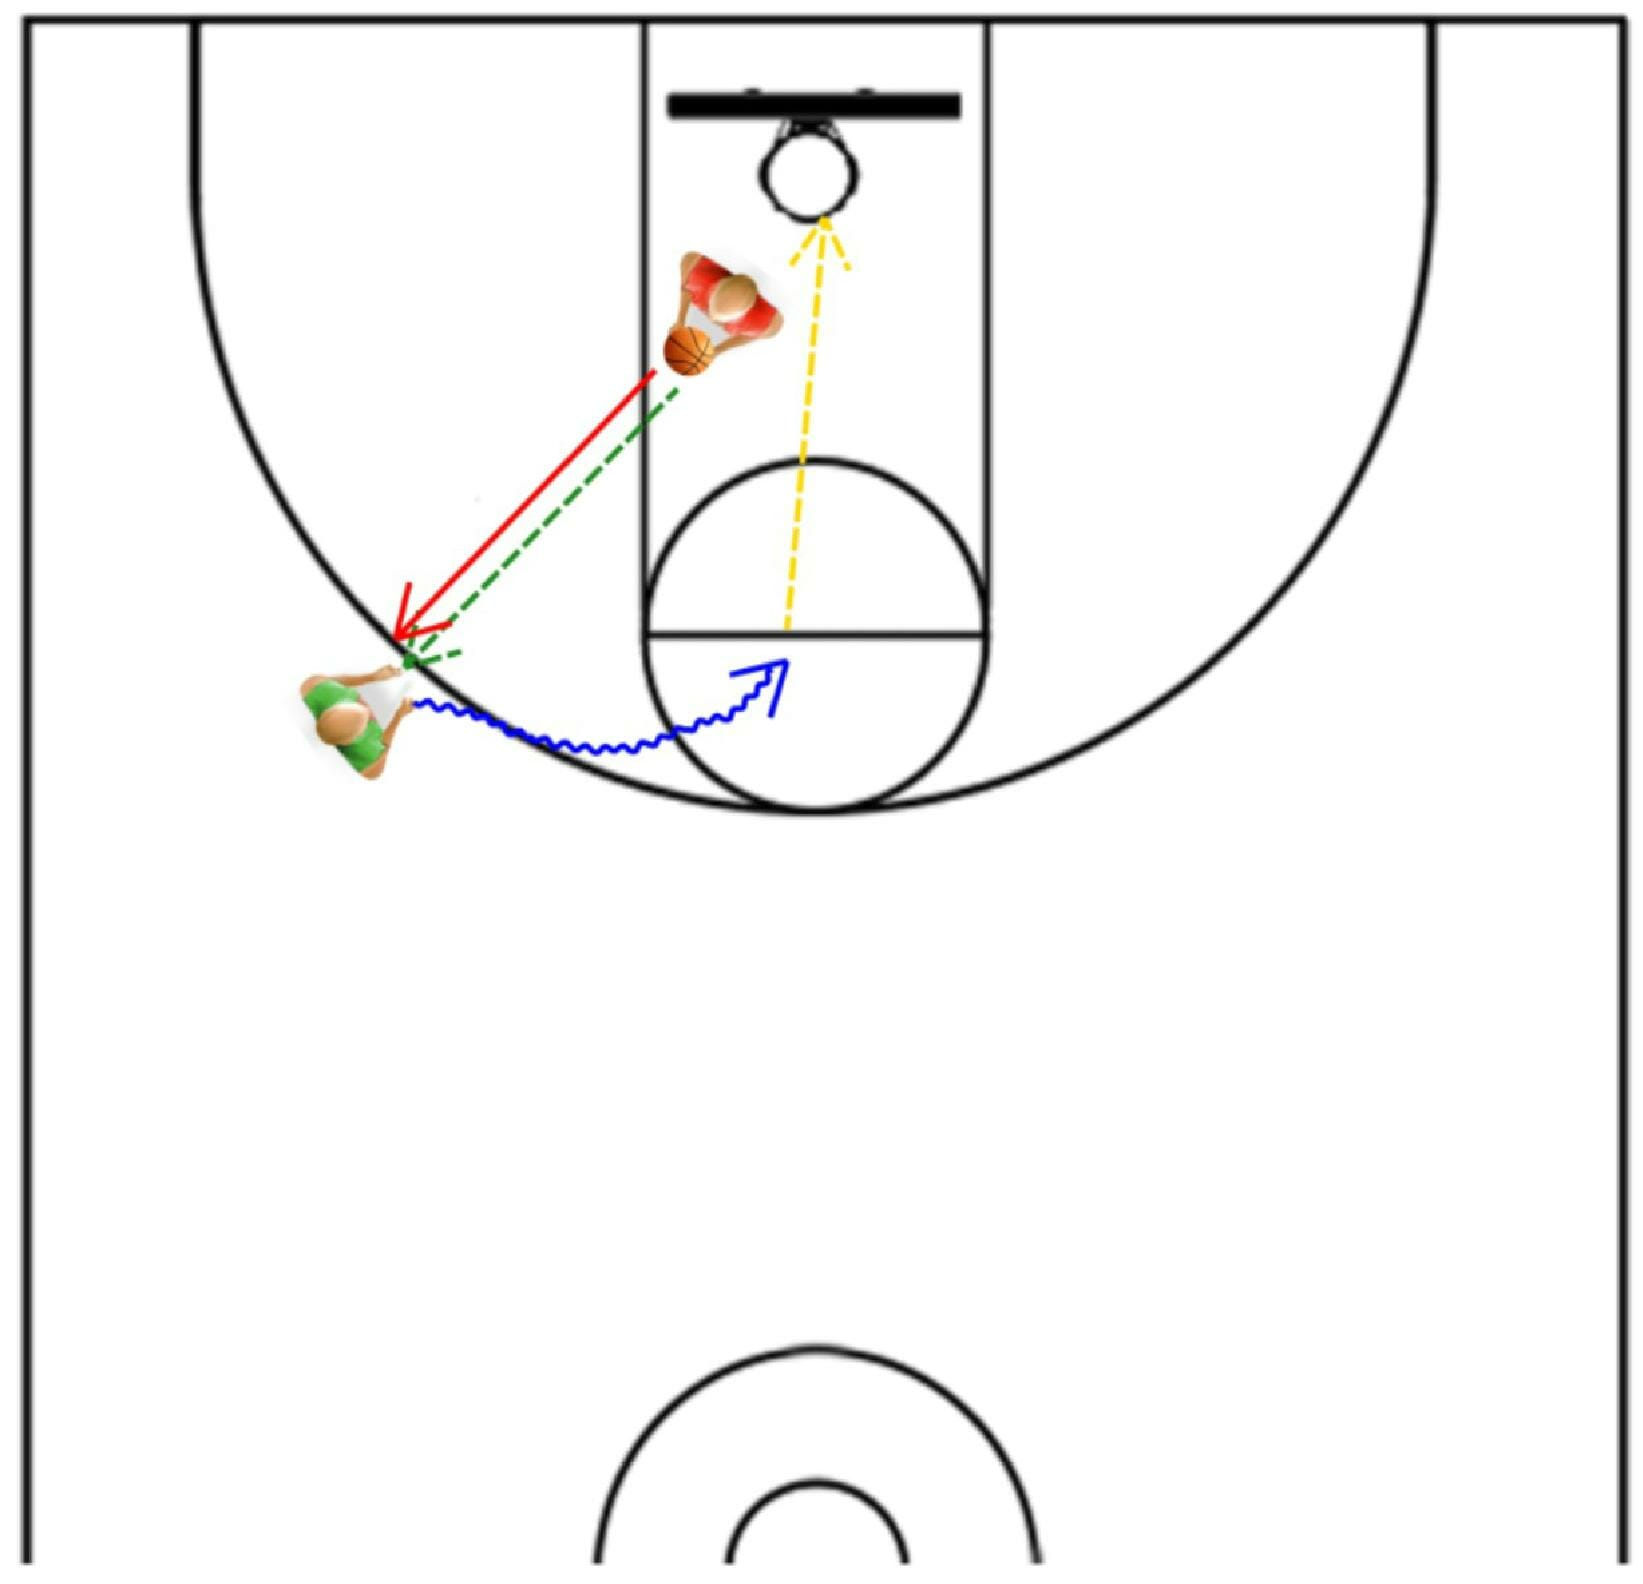 trying out different coaches a good experience for a basketball player 5 keys to being a great basketball coach author: by tony fryer every player must have his or her own basketball coach starts the game every player must dribble constantly most successful coaches try to have their team master a few simple things 8-10 year olds can do this successfully.